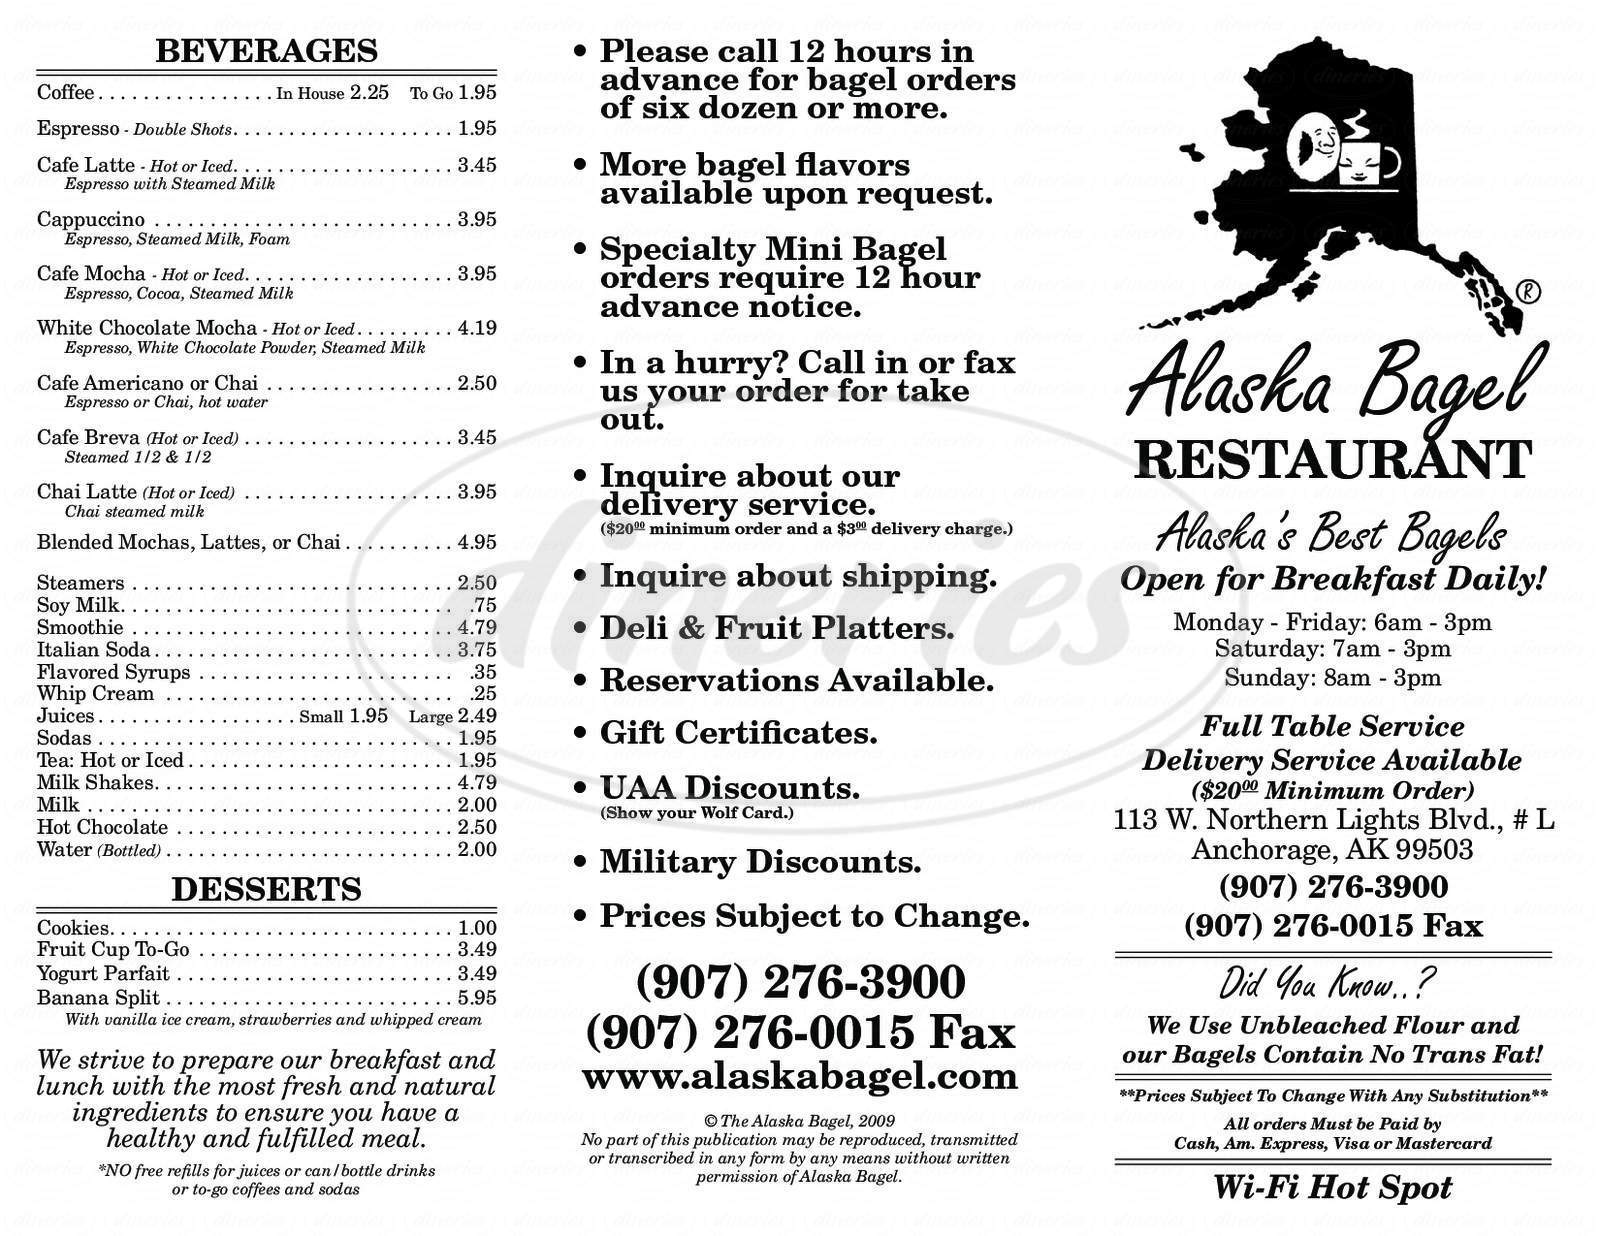 menu for Alaska Bagel Restaurant